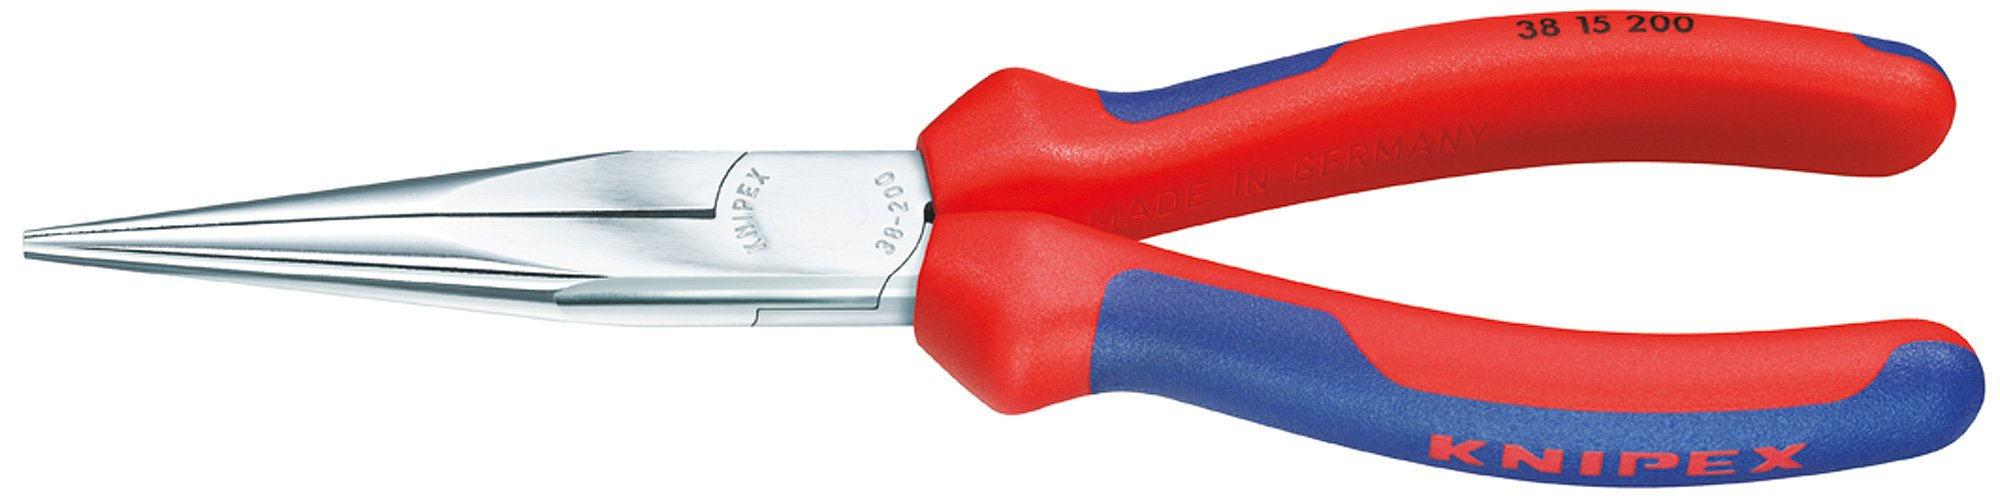 Knipex 3815200 8-Inch Long Nose Pliers without Cutter - Comfort Grip by KNIPEX Tools